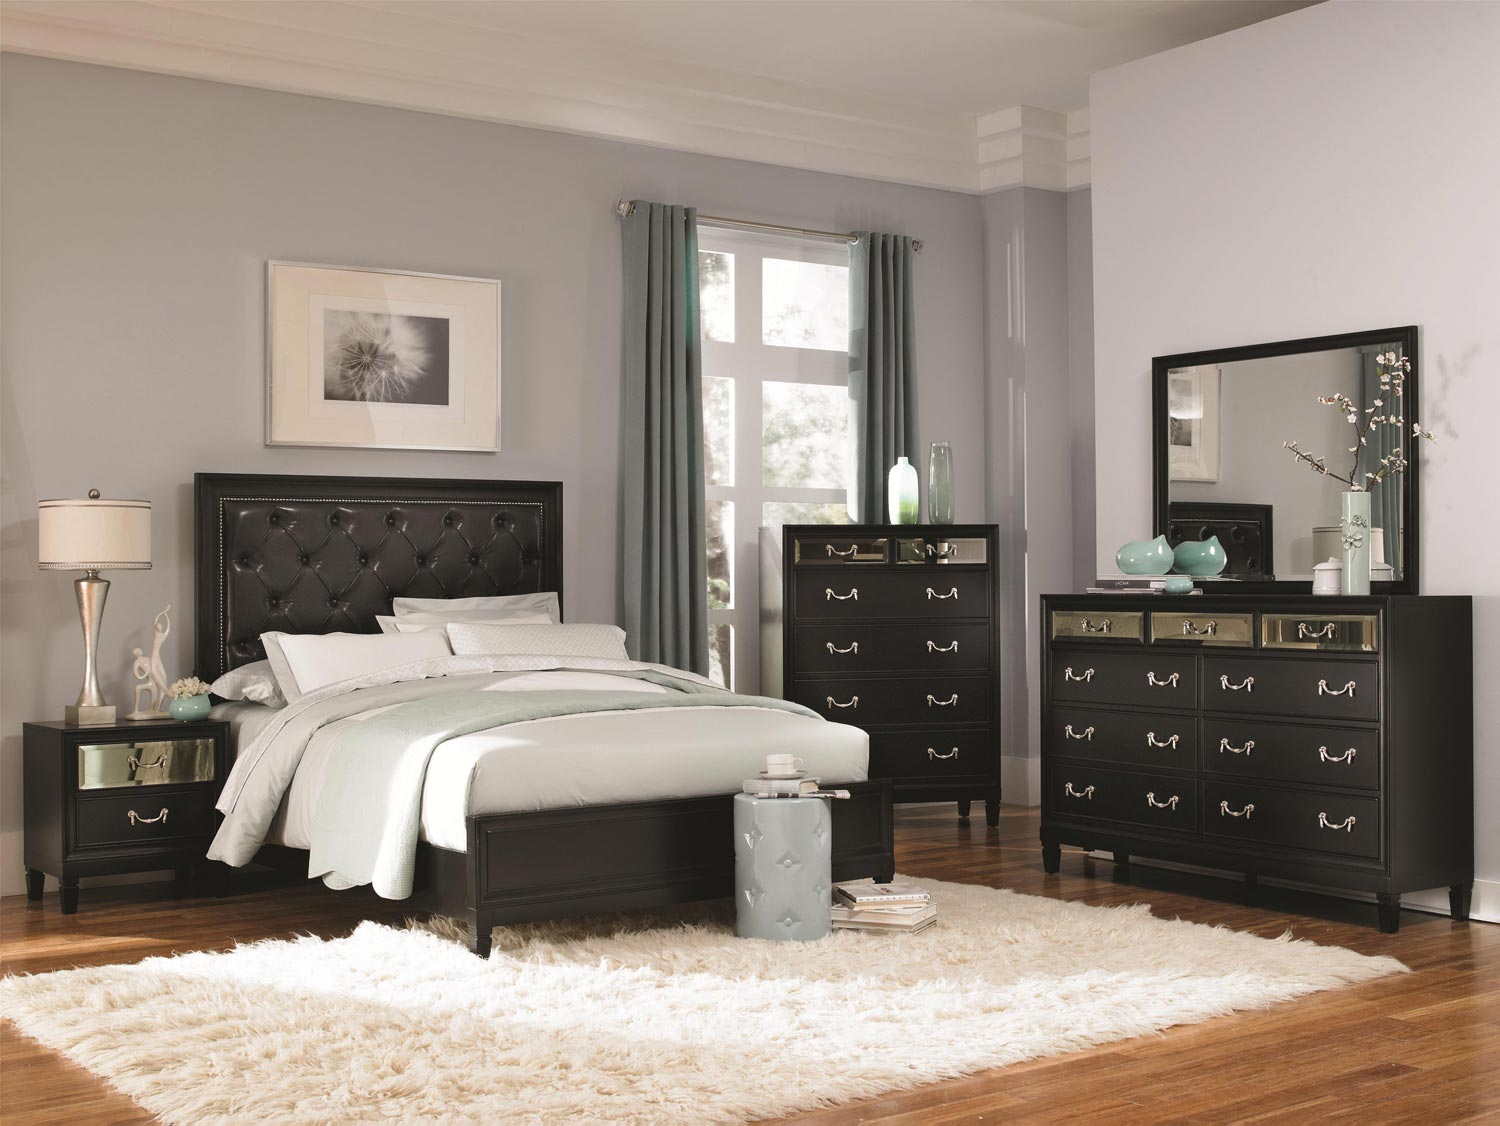 Coaster Devine Bedroom Collection - Black